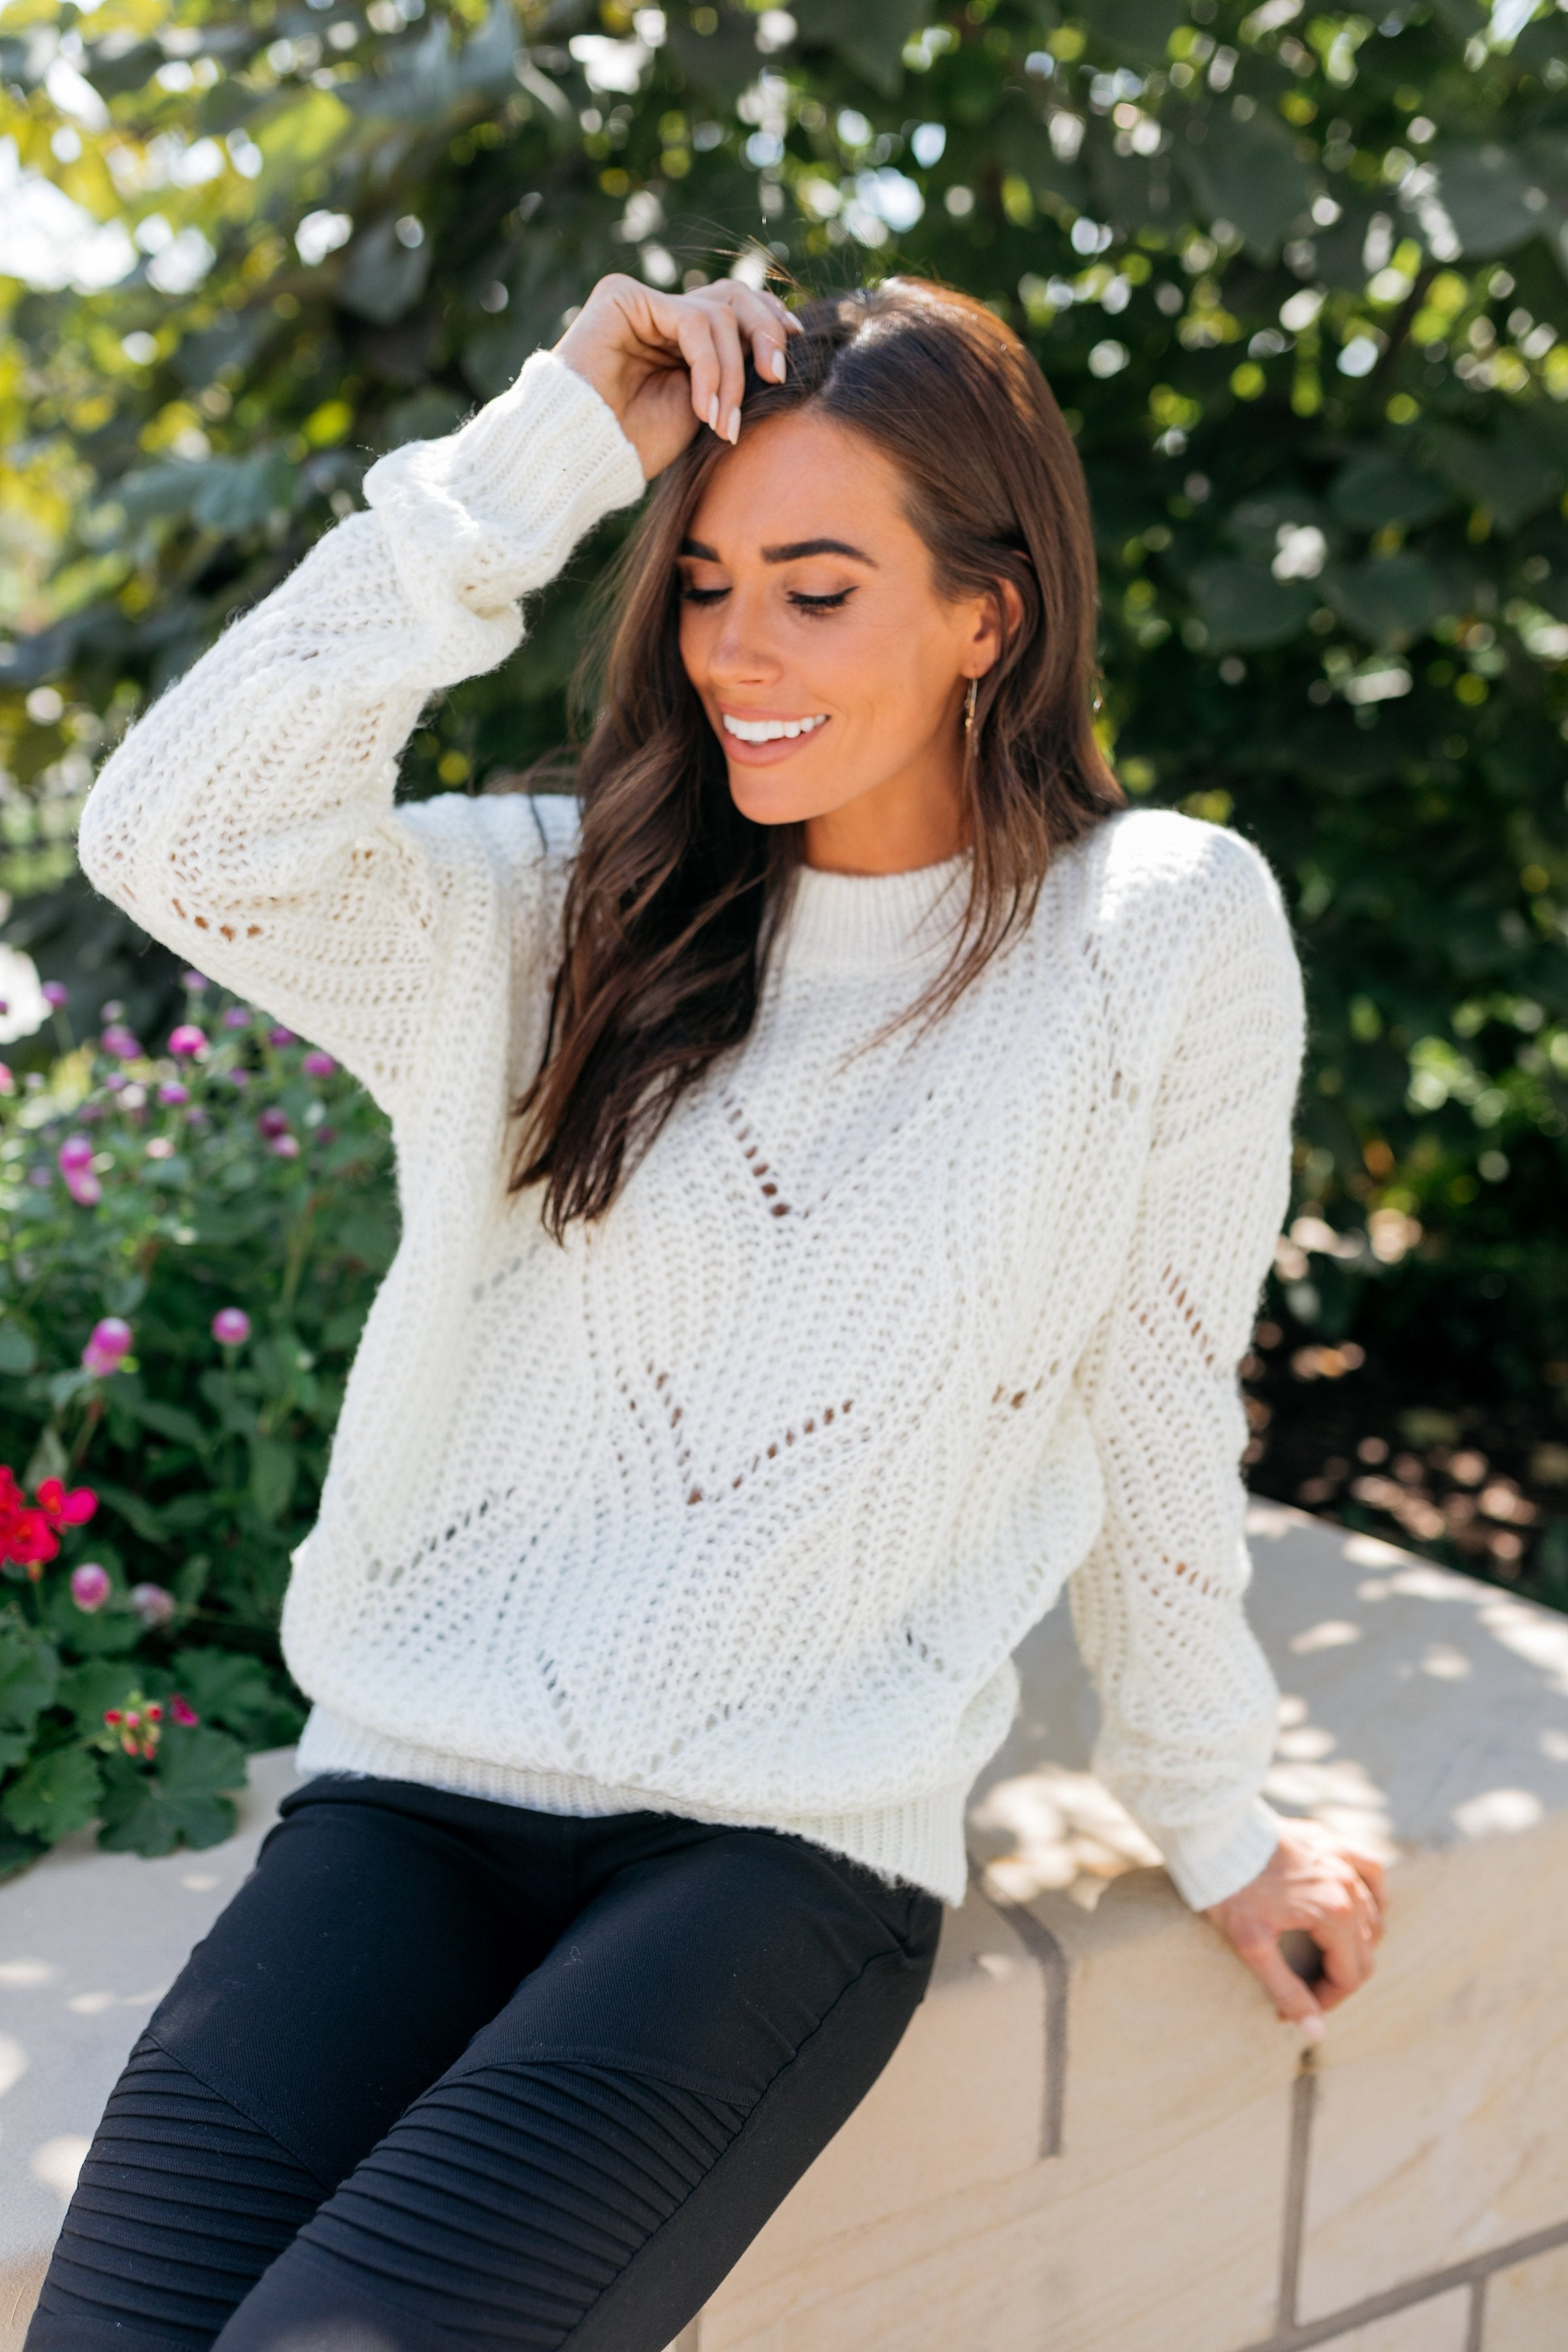 Daydream Delight Sweater In Ivory - ALL SALES FINAL